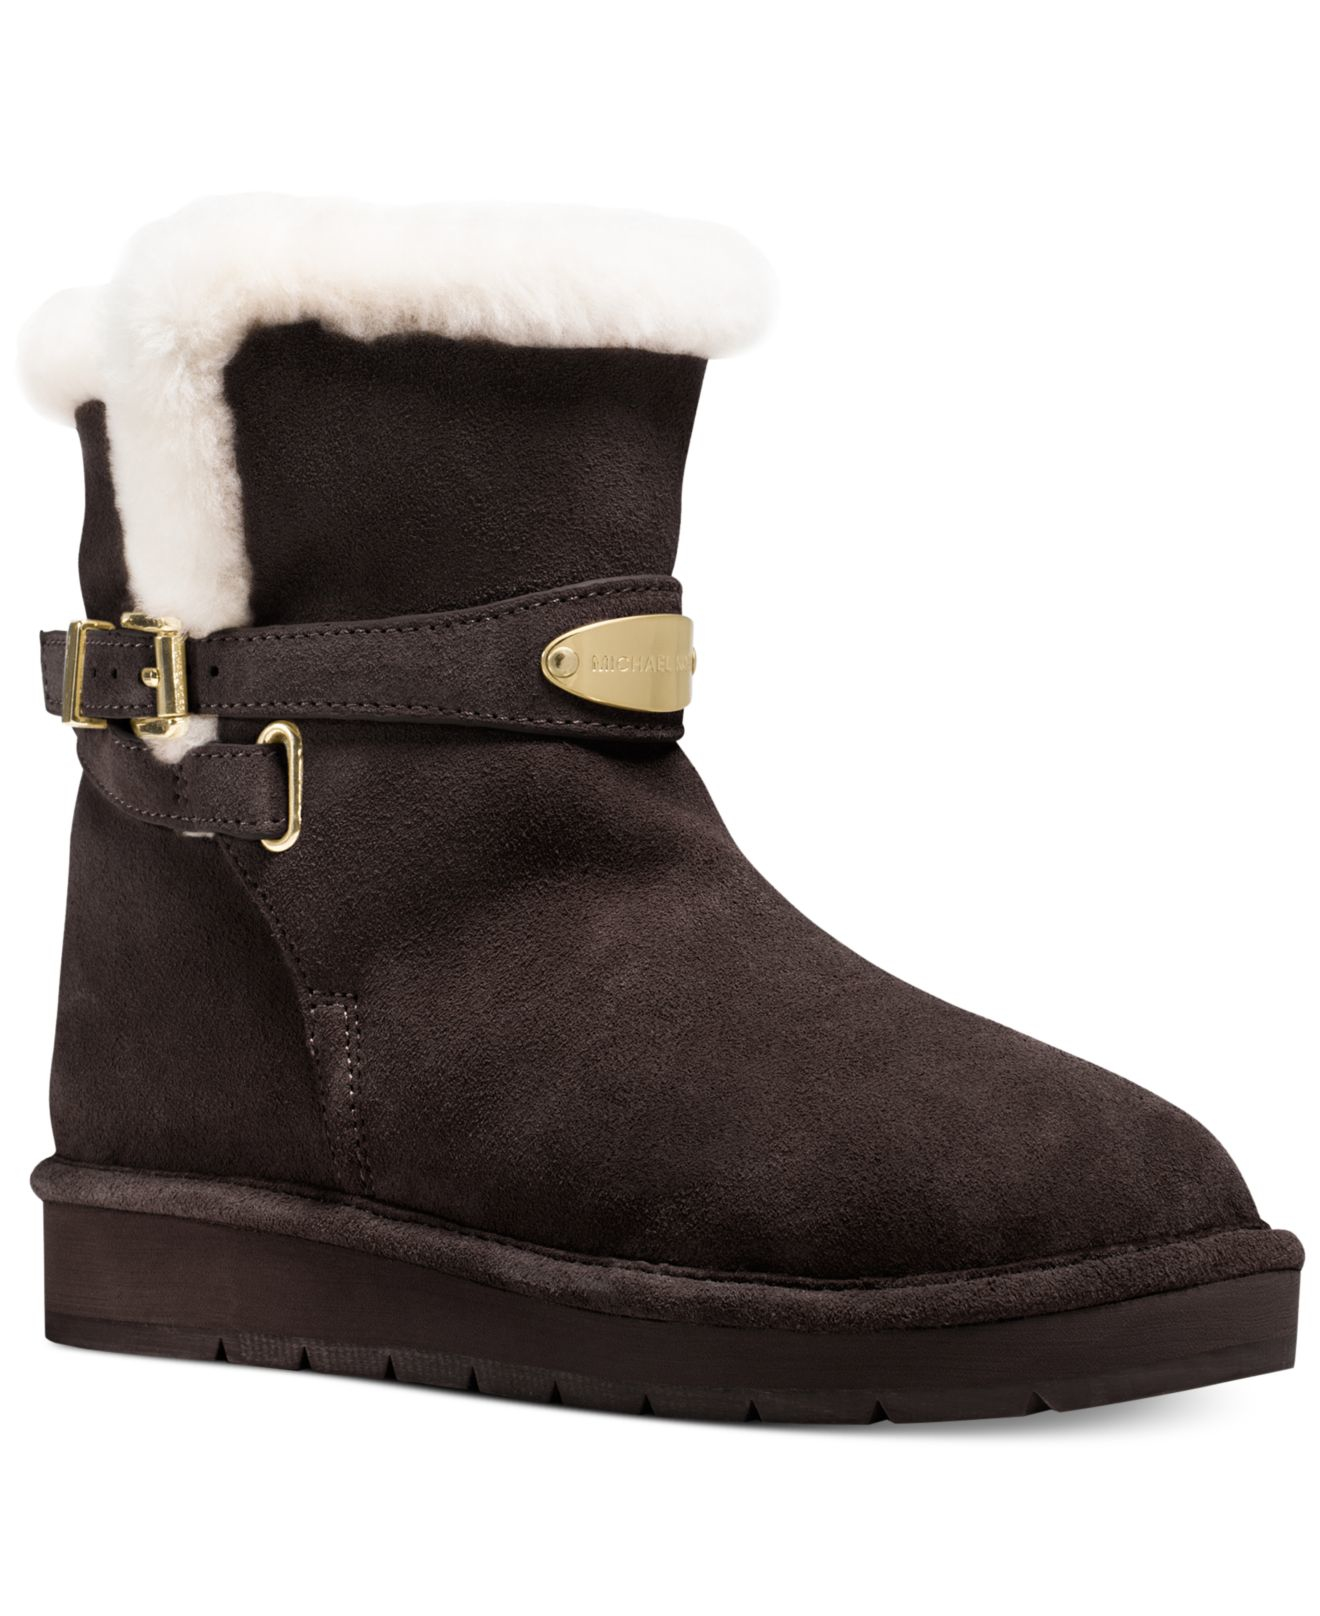 ugg boots how to clean suede